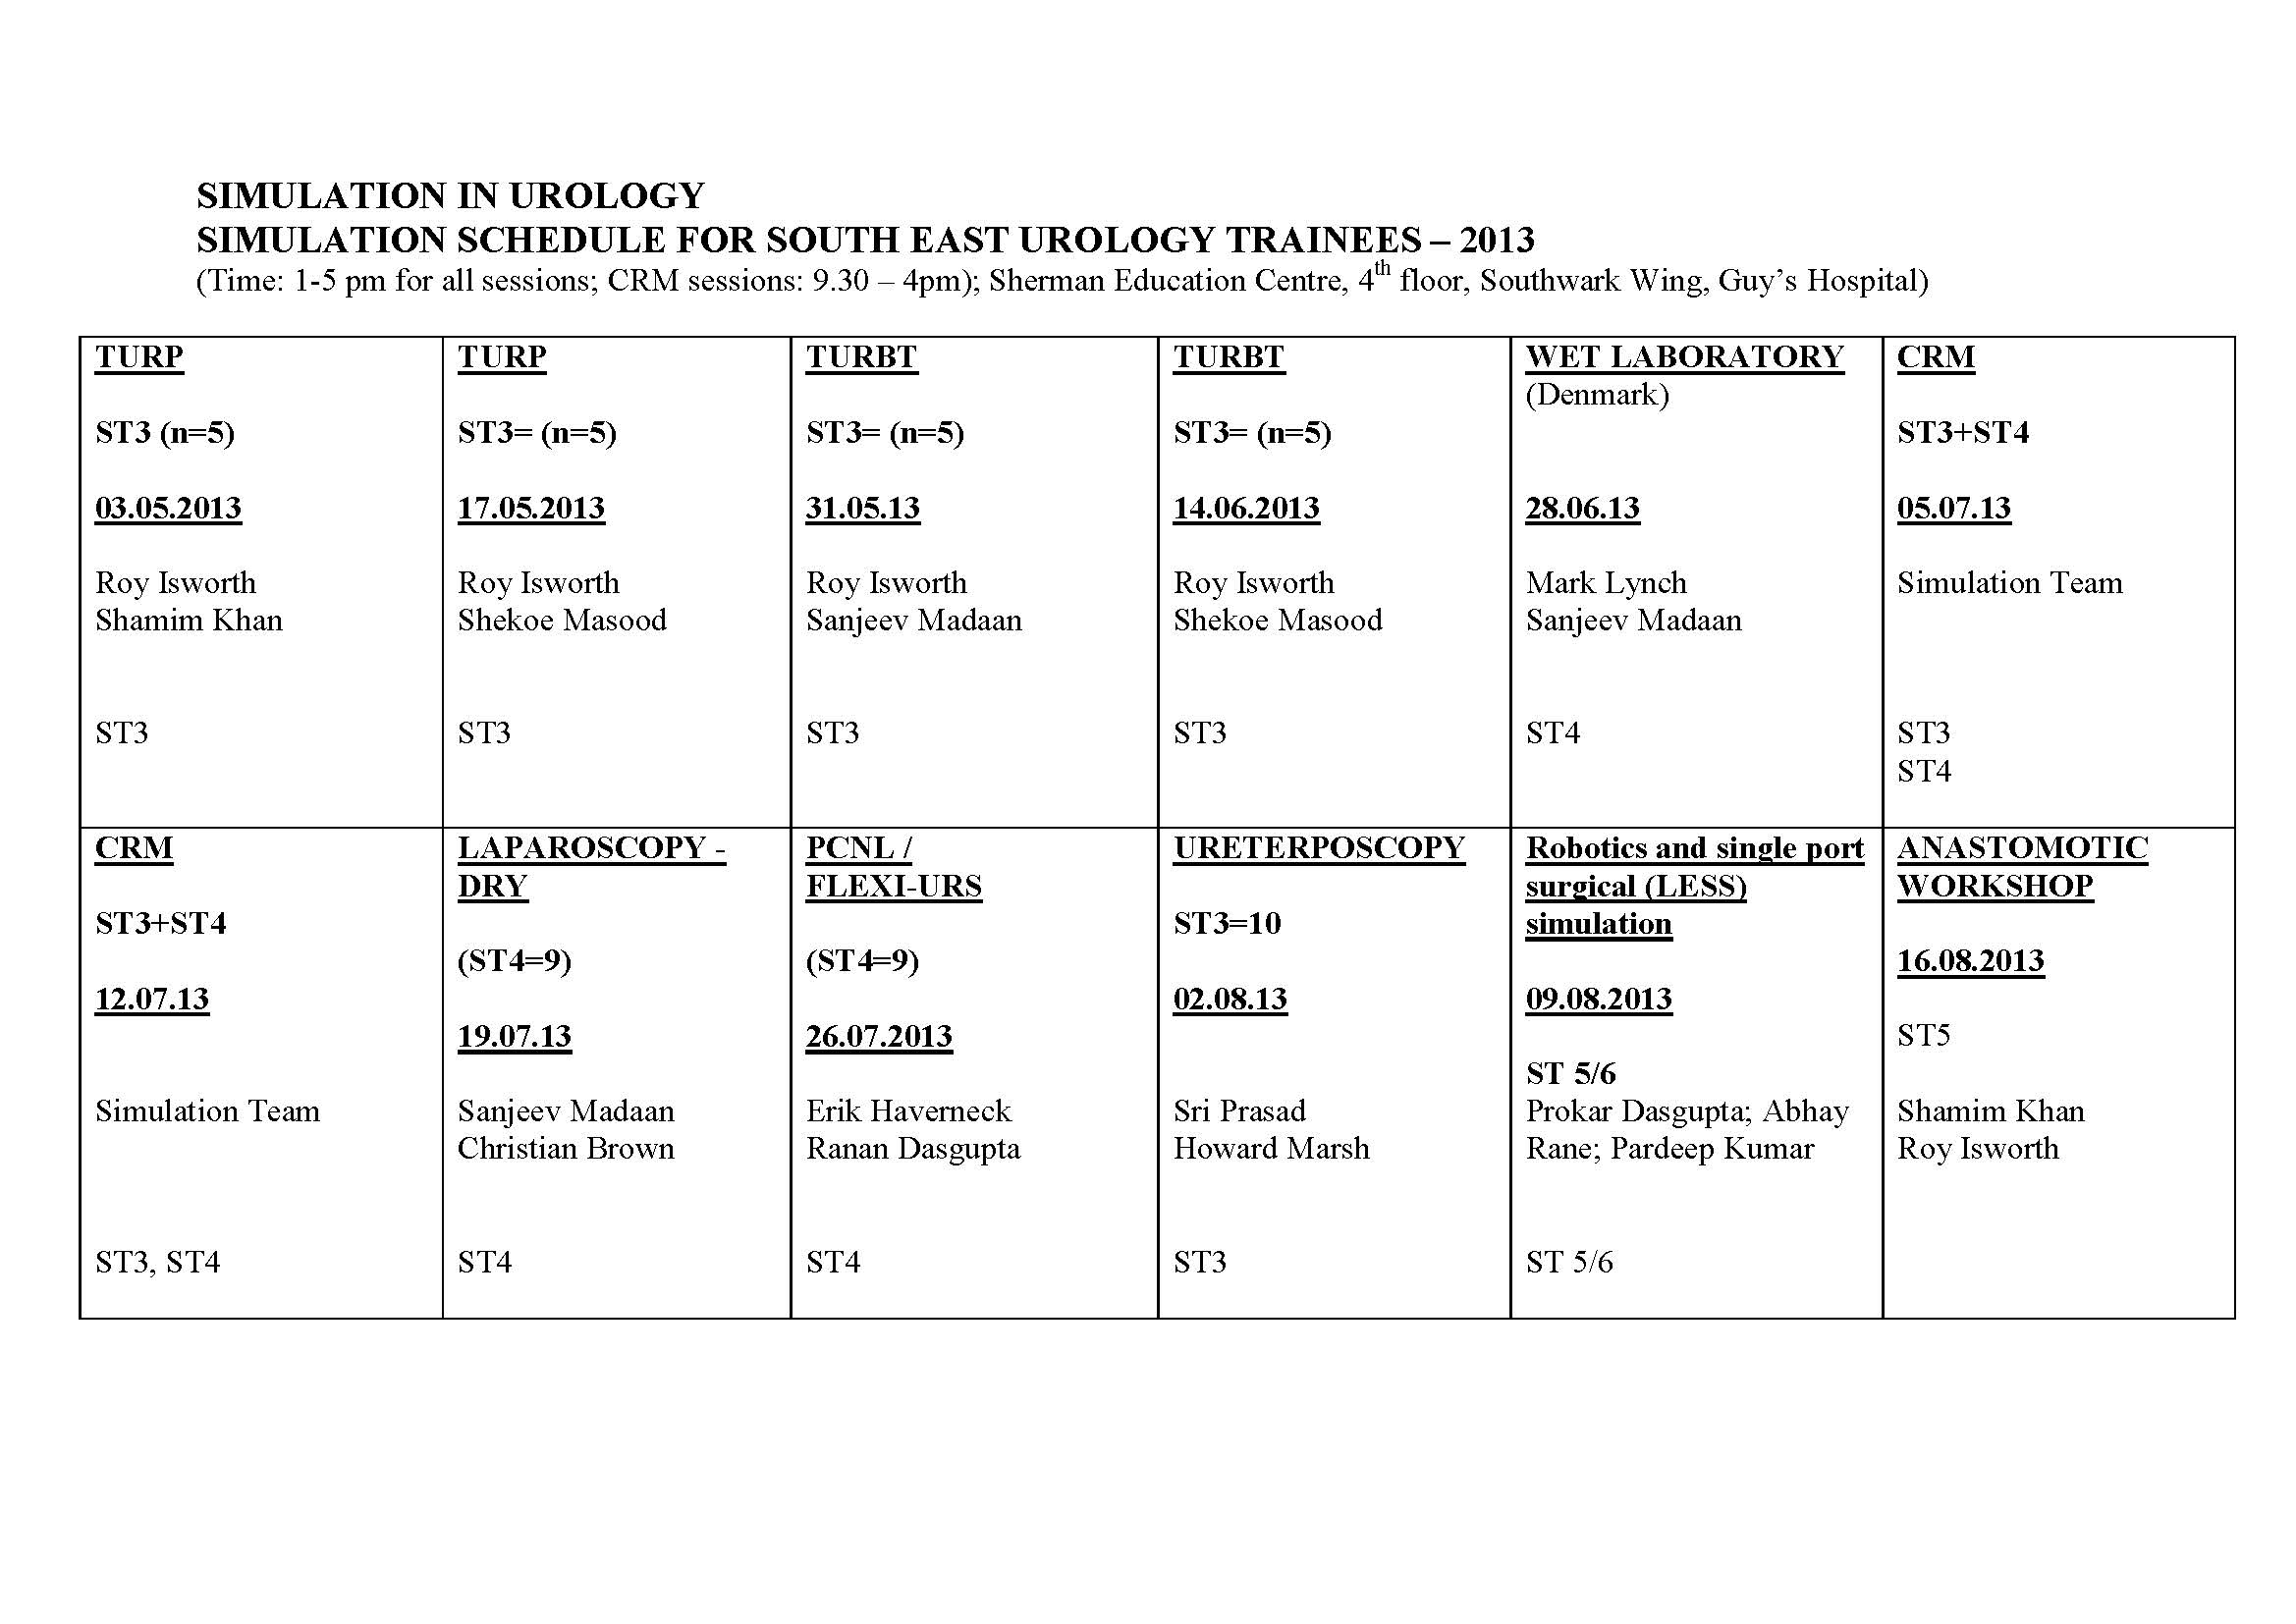 Urology Simulation Timetable _version 2_2013